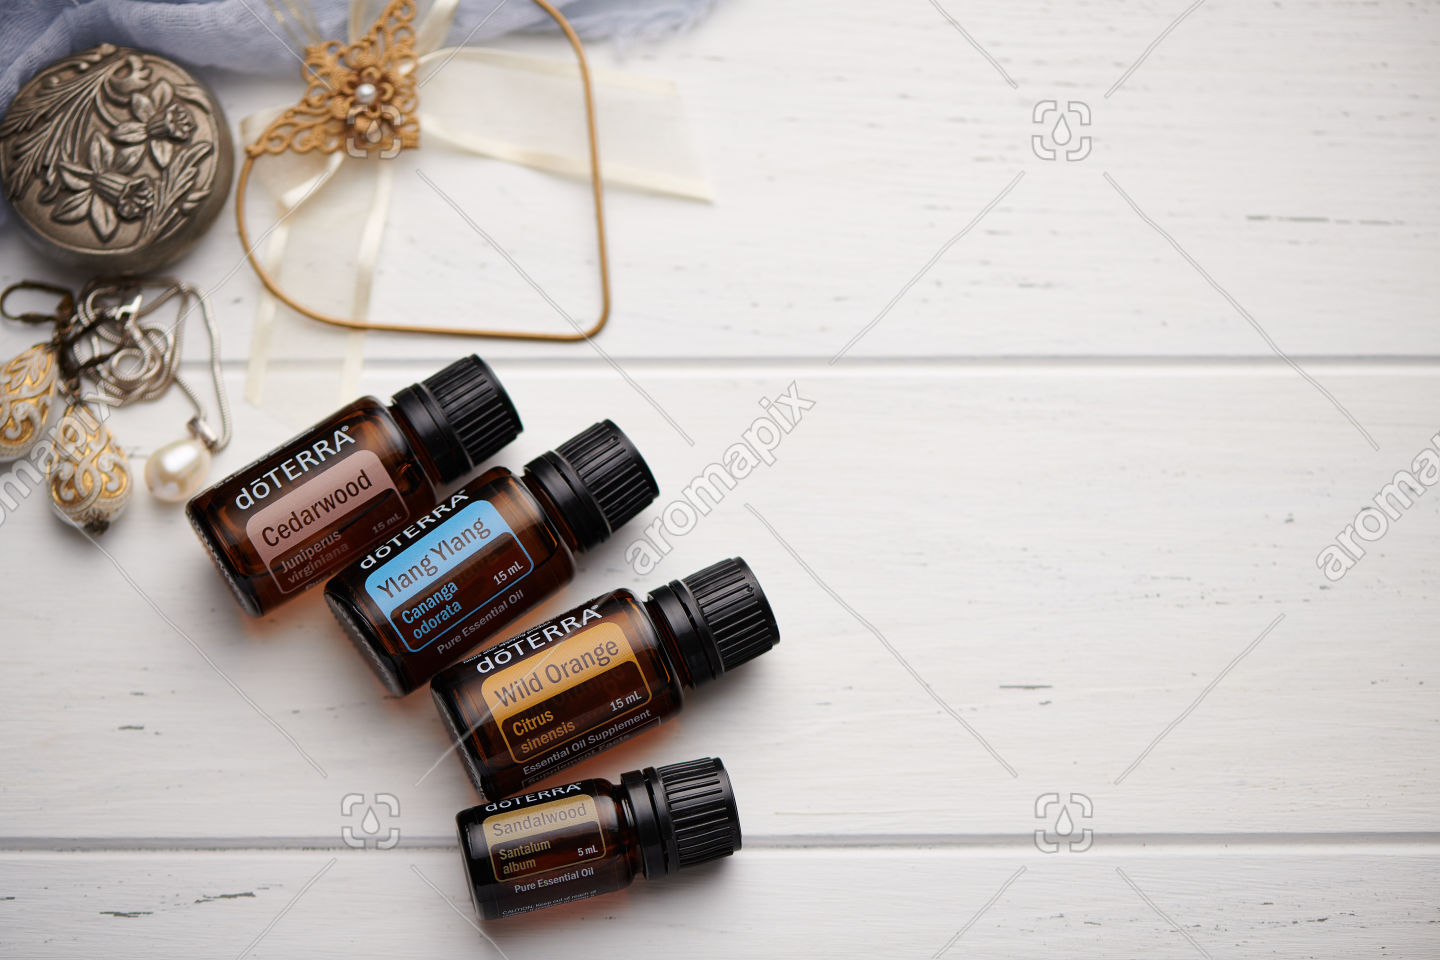 doTERRA Cedarwood, Ylang Ylang, Wild Orange and Sandalwood on white vintage wooden background